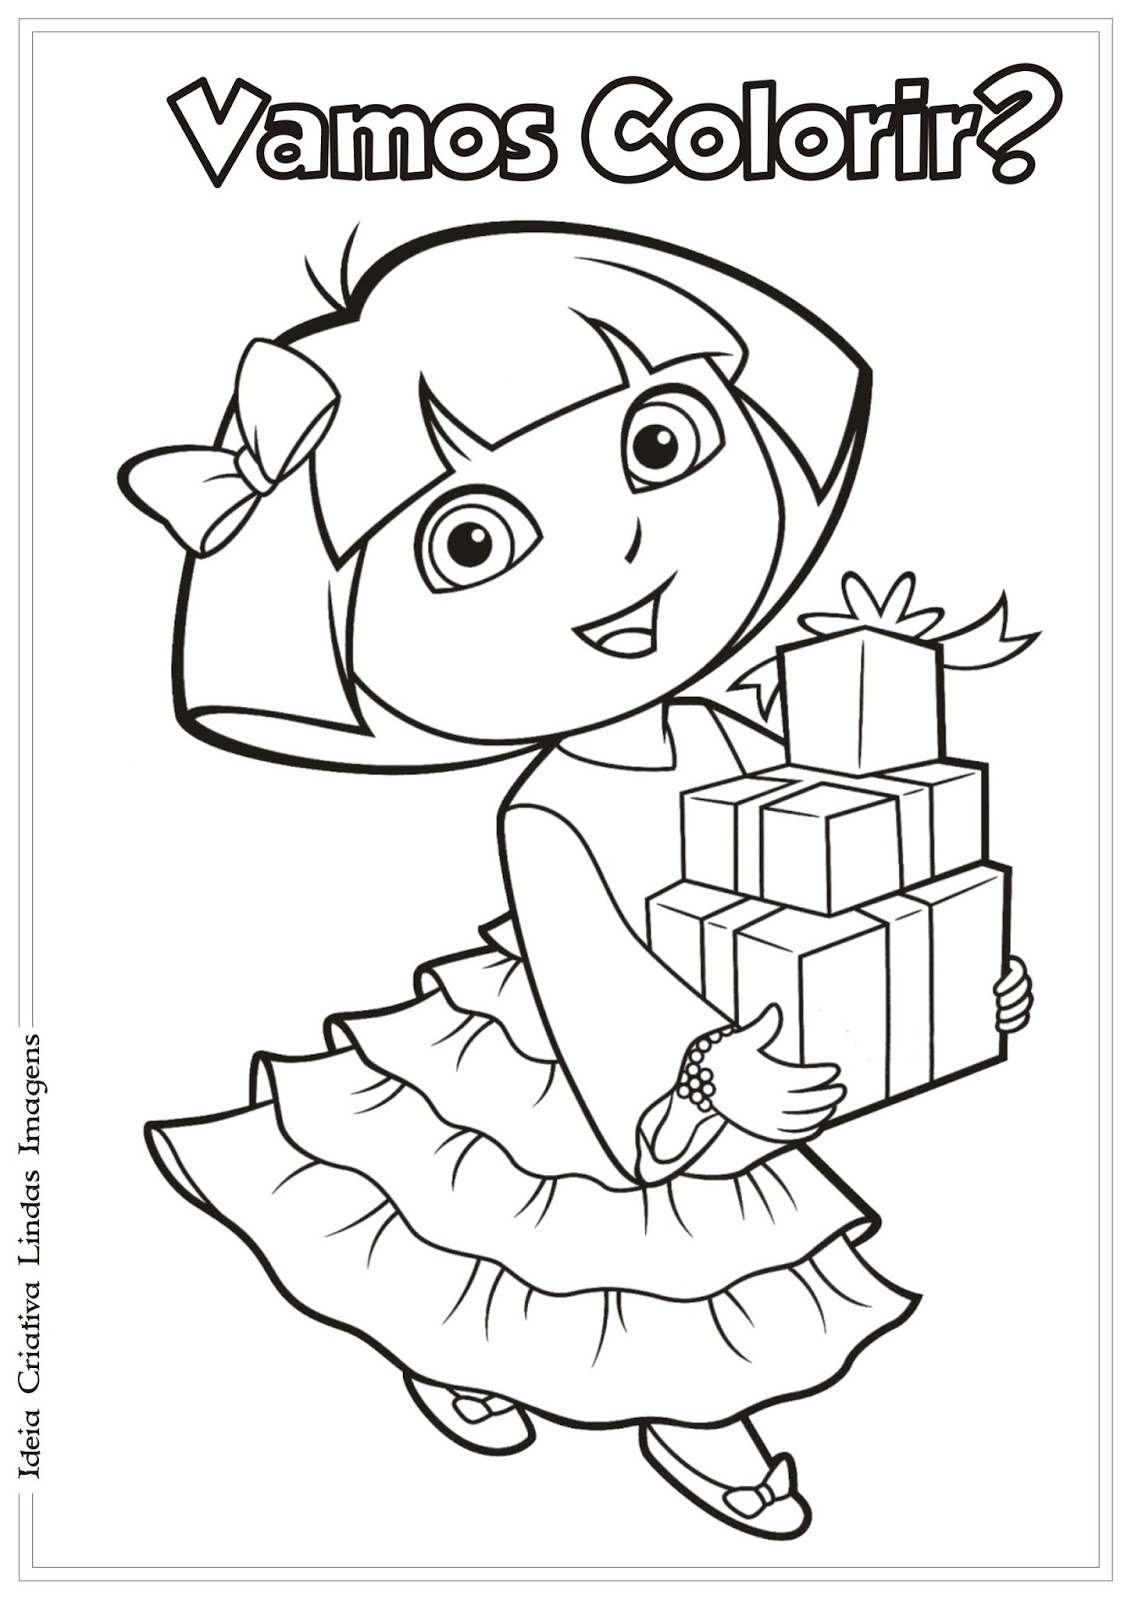 Painting pages dora - Dora Painting Games Dora Christmas Coloring Pages